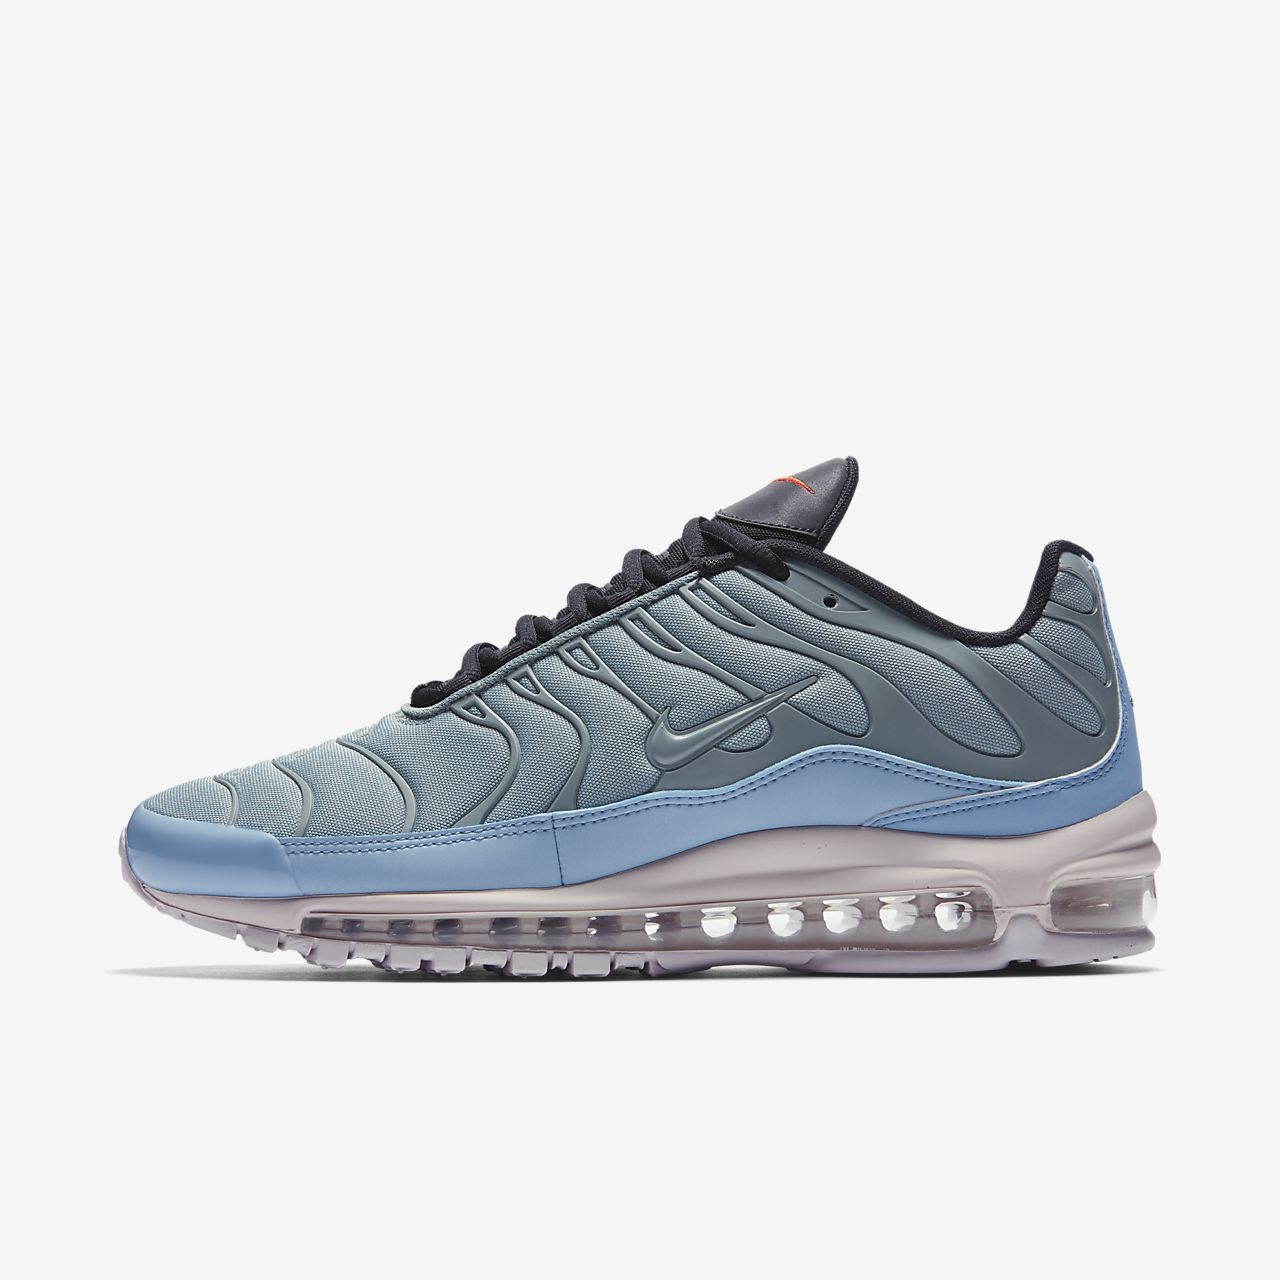 57f2f4359dc Nike Air Max 97 Plus Men's Shoe. Nike.com ZA